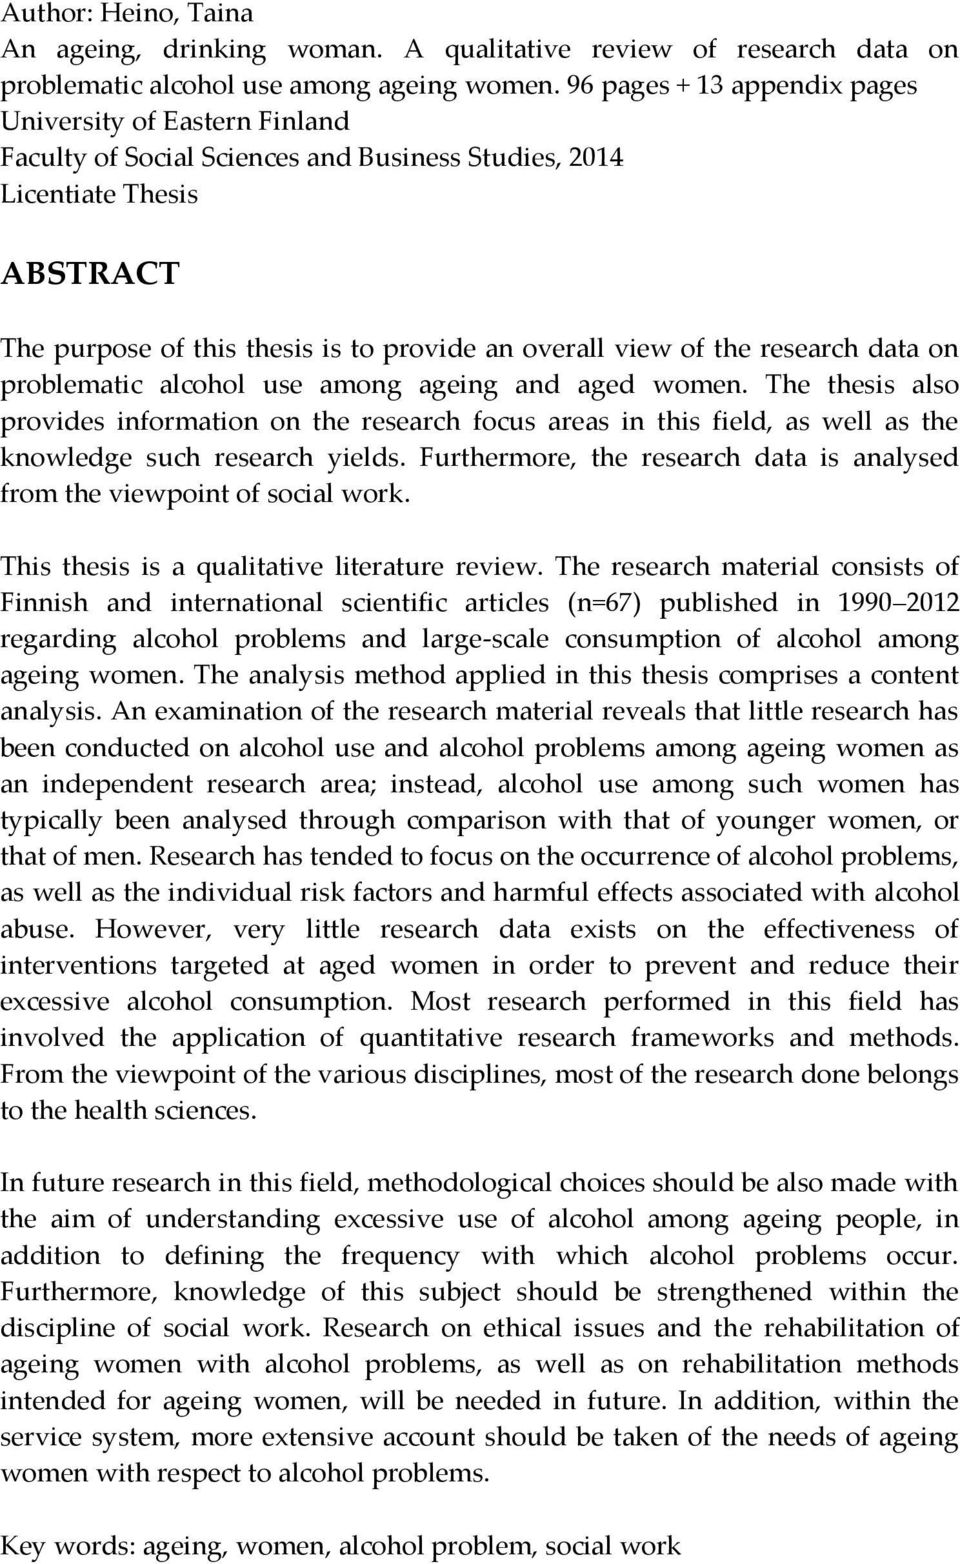 the research data on problematic alcohol use among ageing and aged women. The thesis also provides information on the research focus areas in this field, as well as the knowledge such research yields.